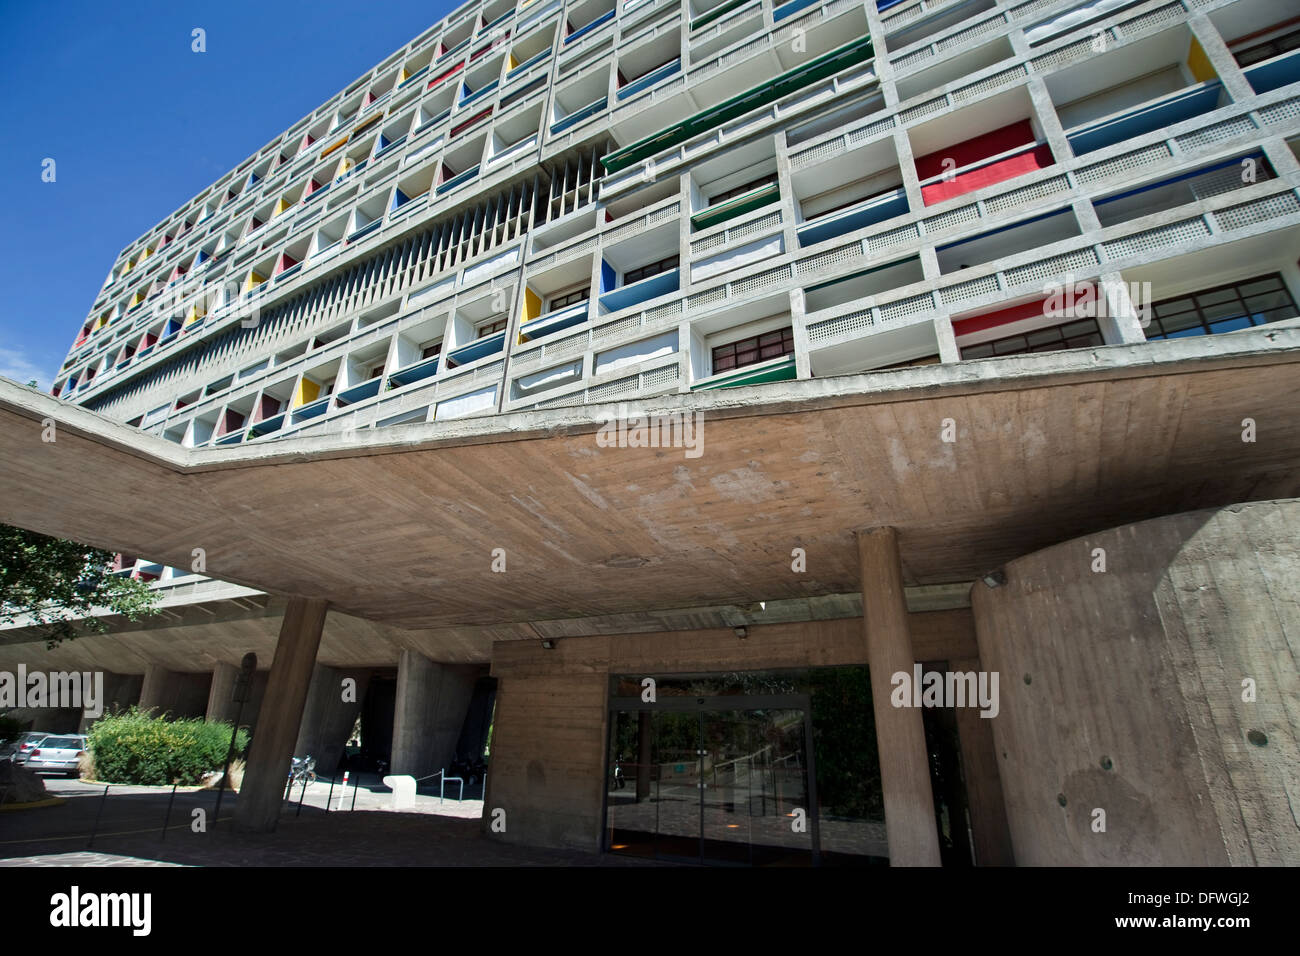 The front elevation of modernist residential housing The Unité d'Habitation designed  by Le Corbusier, with Nadir Afonso - Stock Image